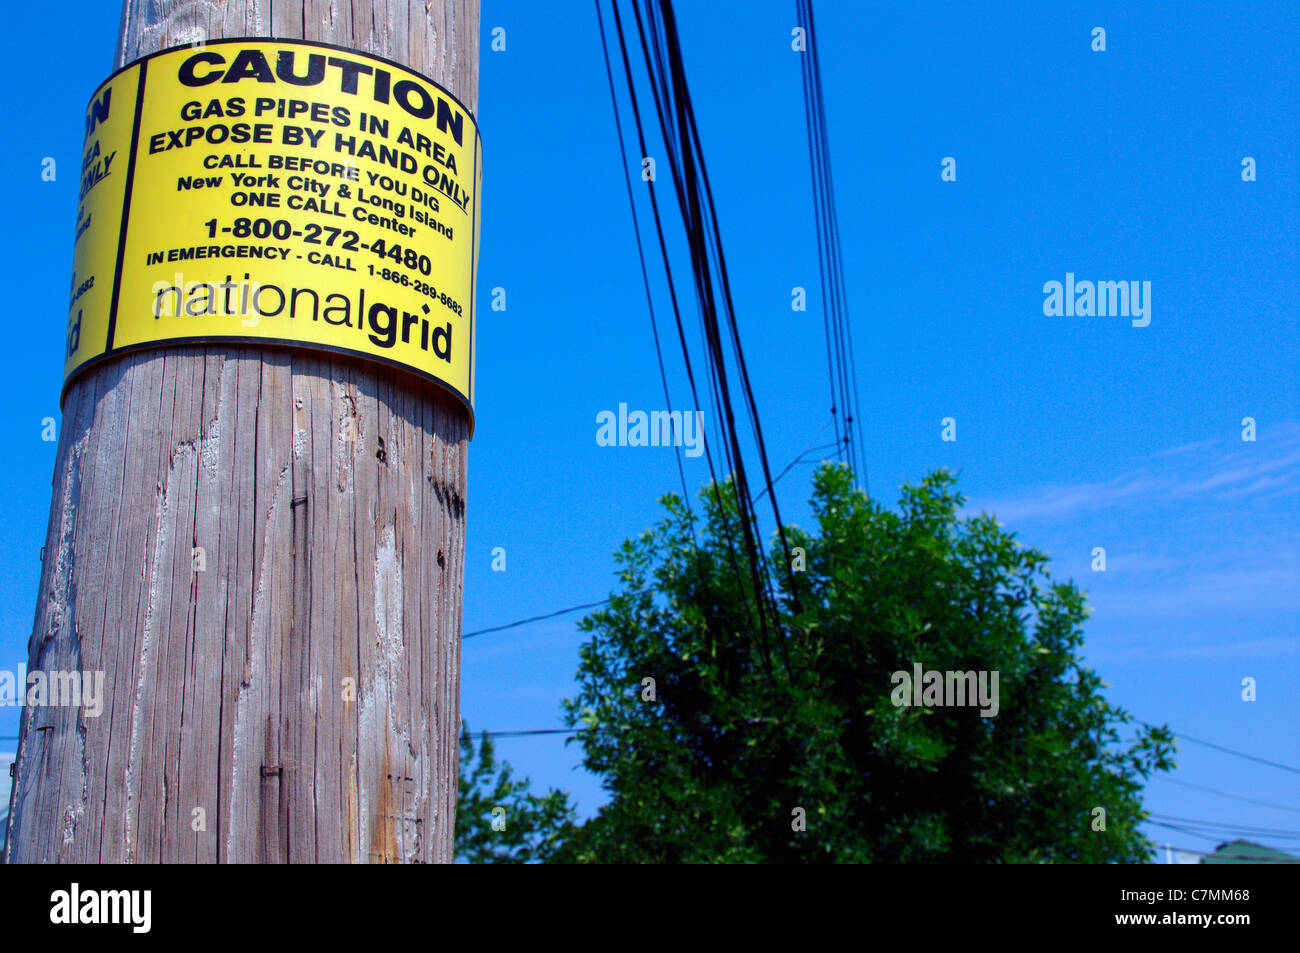 National grid caution sign on electrical power pole on new york national grid caution sign on electrical power pole on new york city borough street usa biocorpaavc Image collections